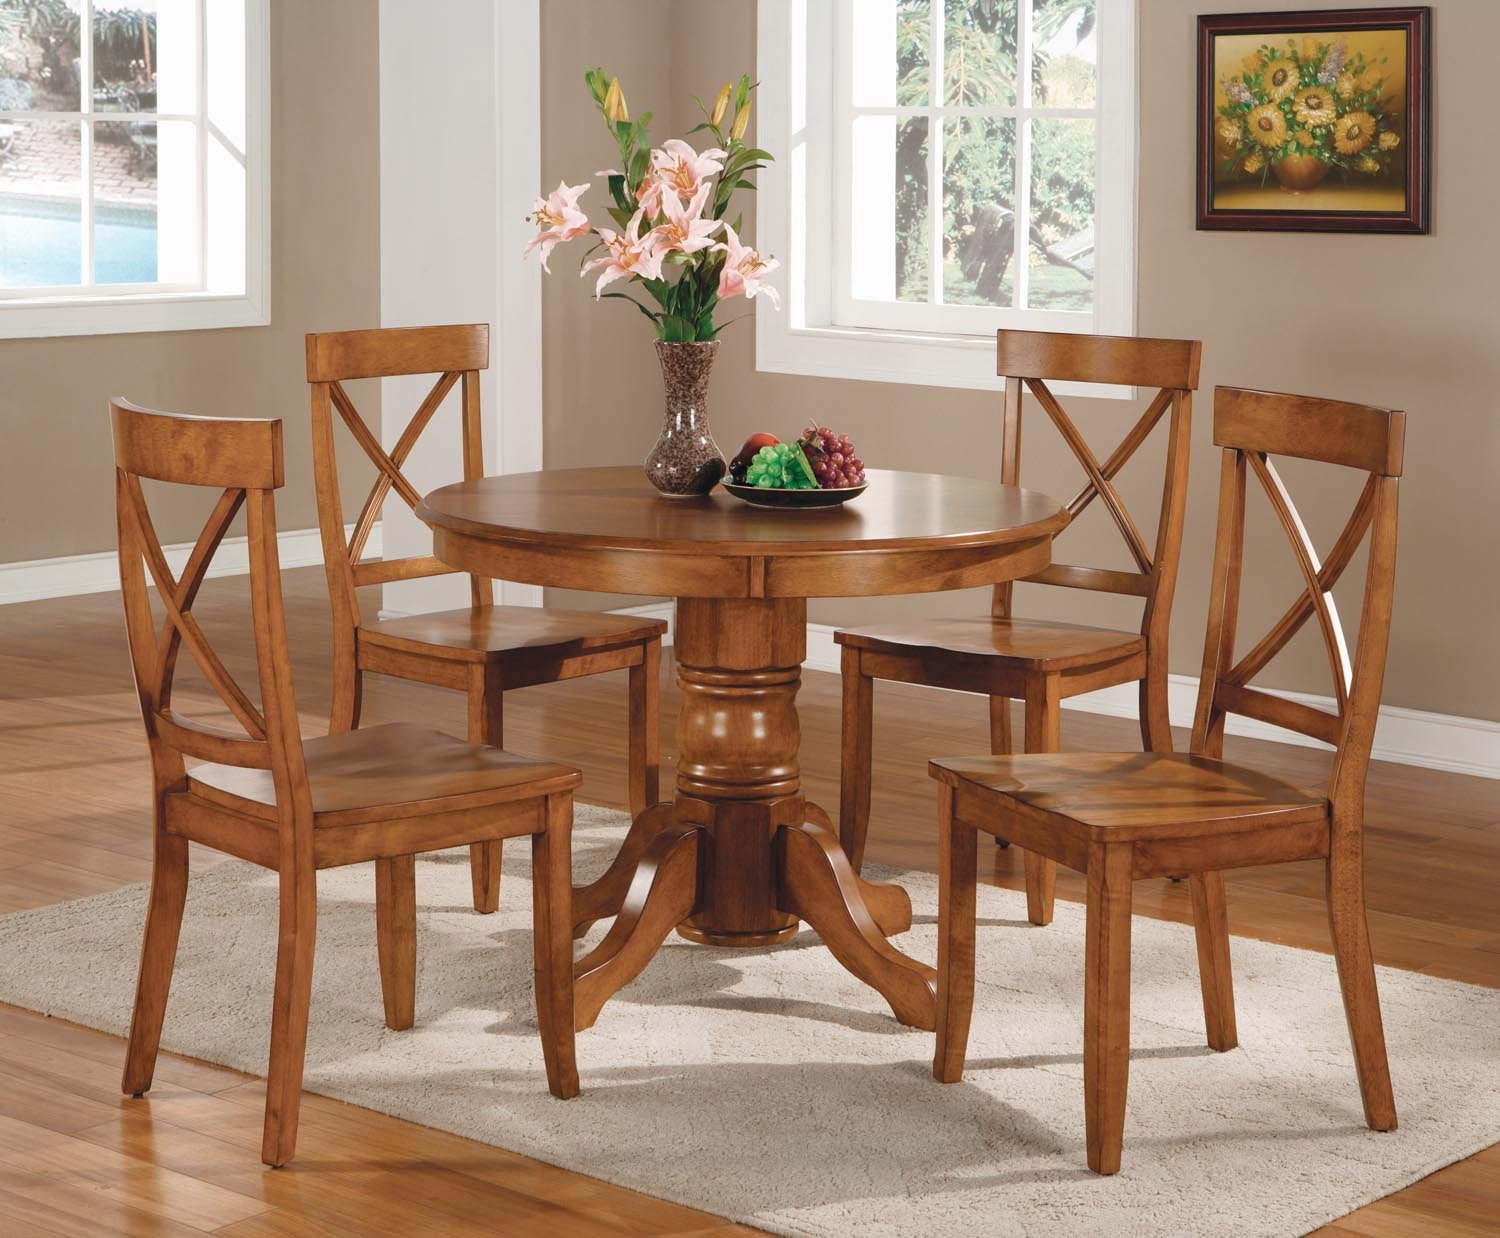 amazoncom home styles 5piece dining set black and cottage oak finish kitchen u0026 dining room furniture